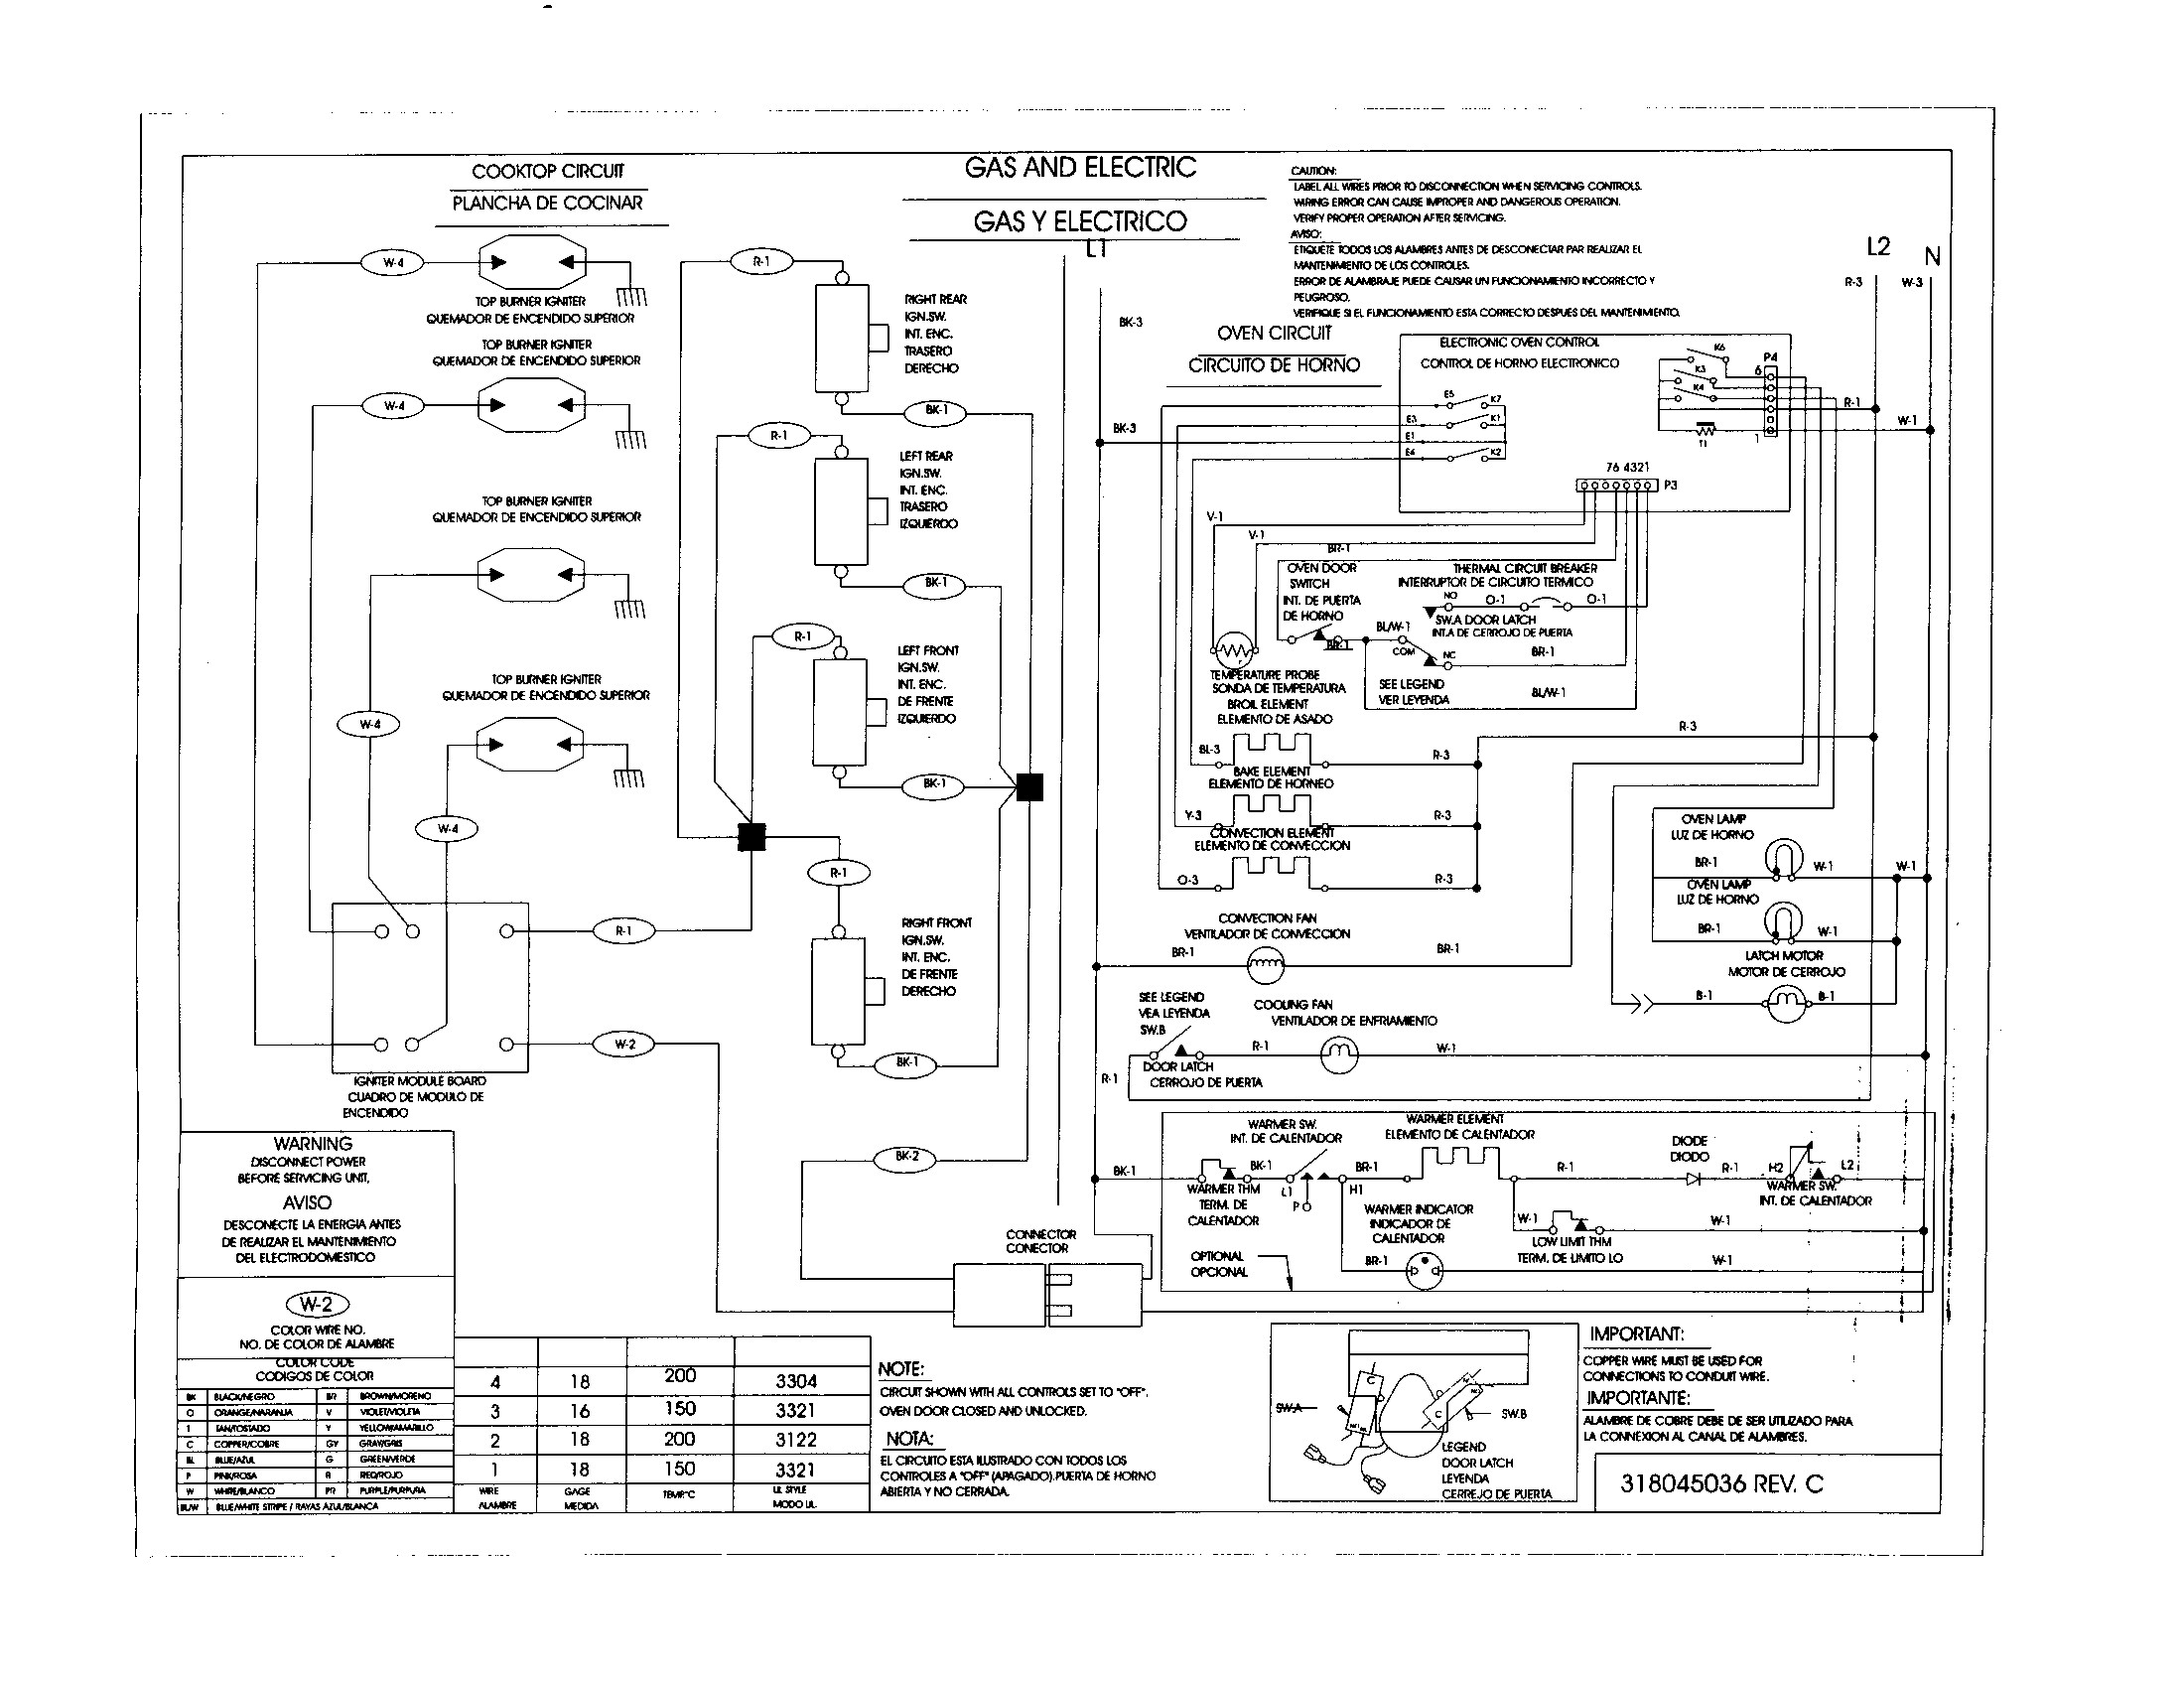 Wiring Diagram For 220 Volt Double Oven Radio 110 To Circuit Breaker A 22 Custom U2022 Rh Macabox Co Single Phase